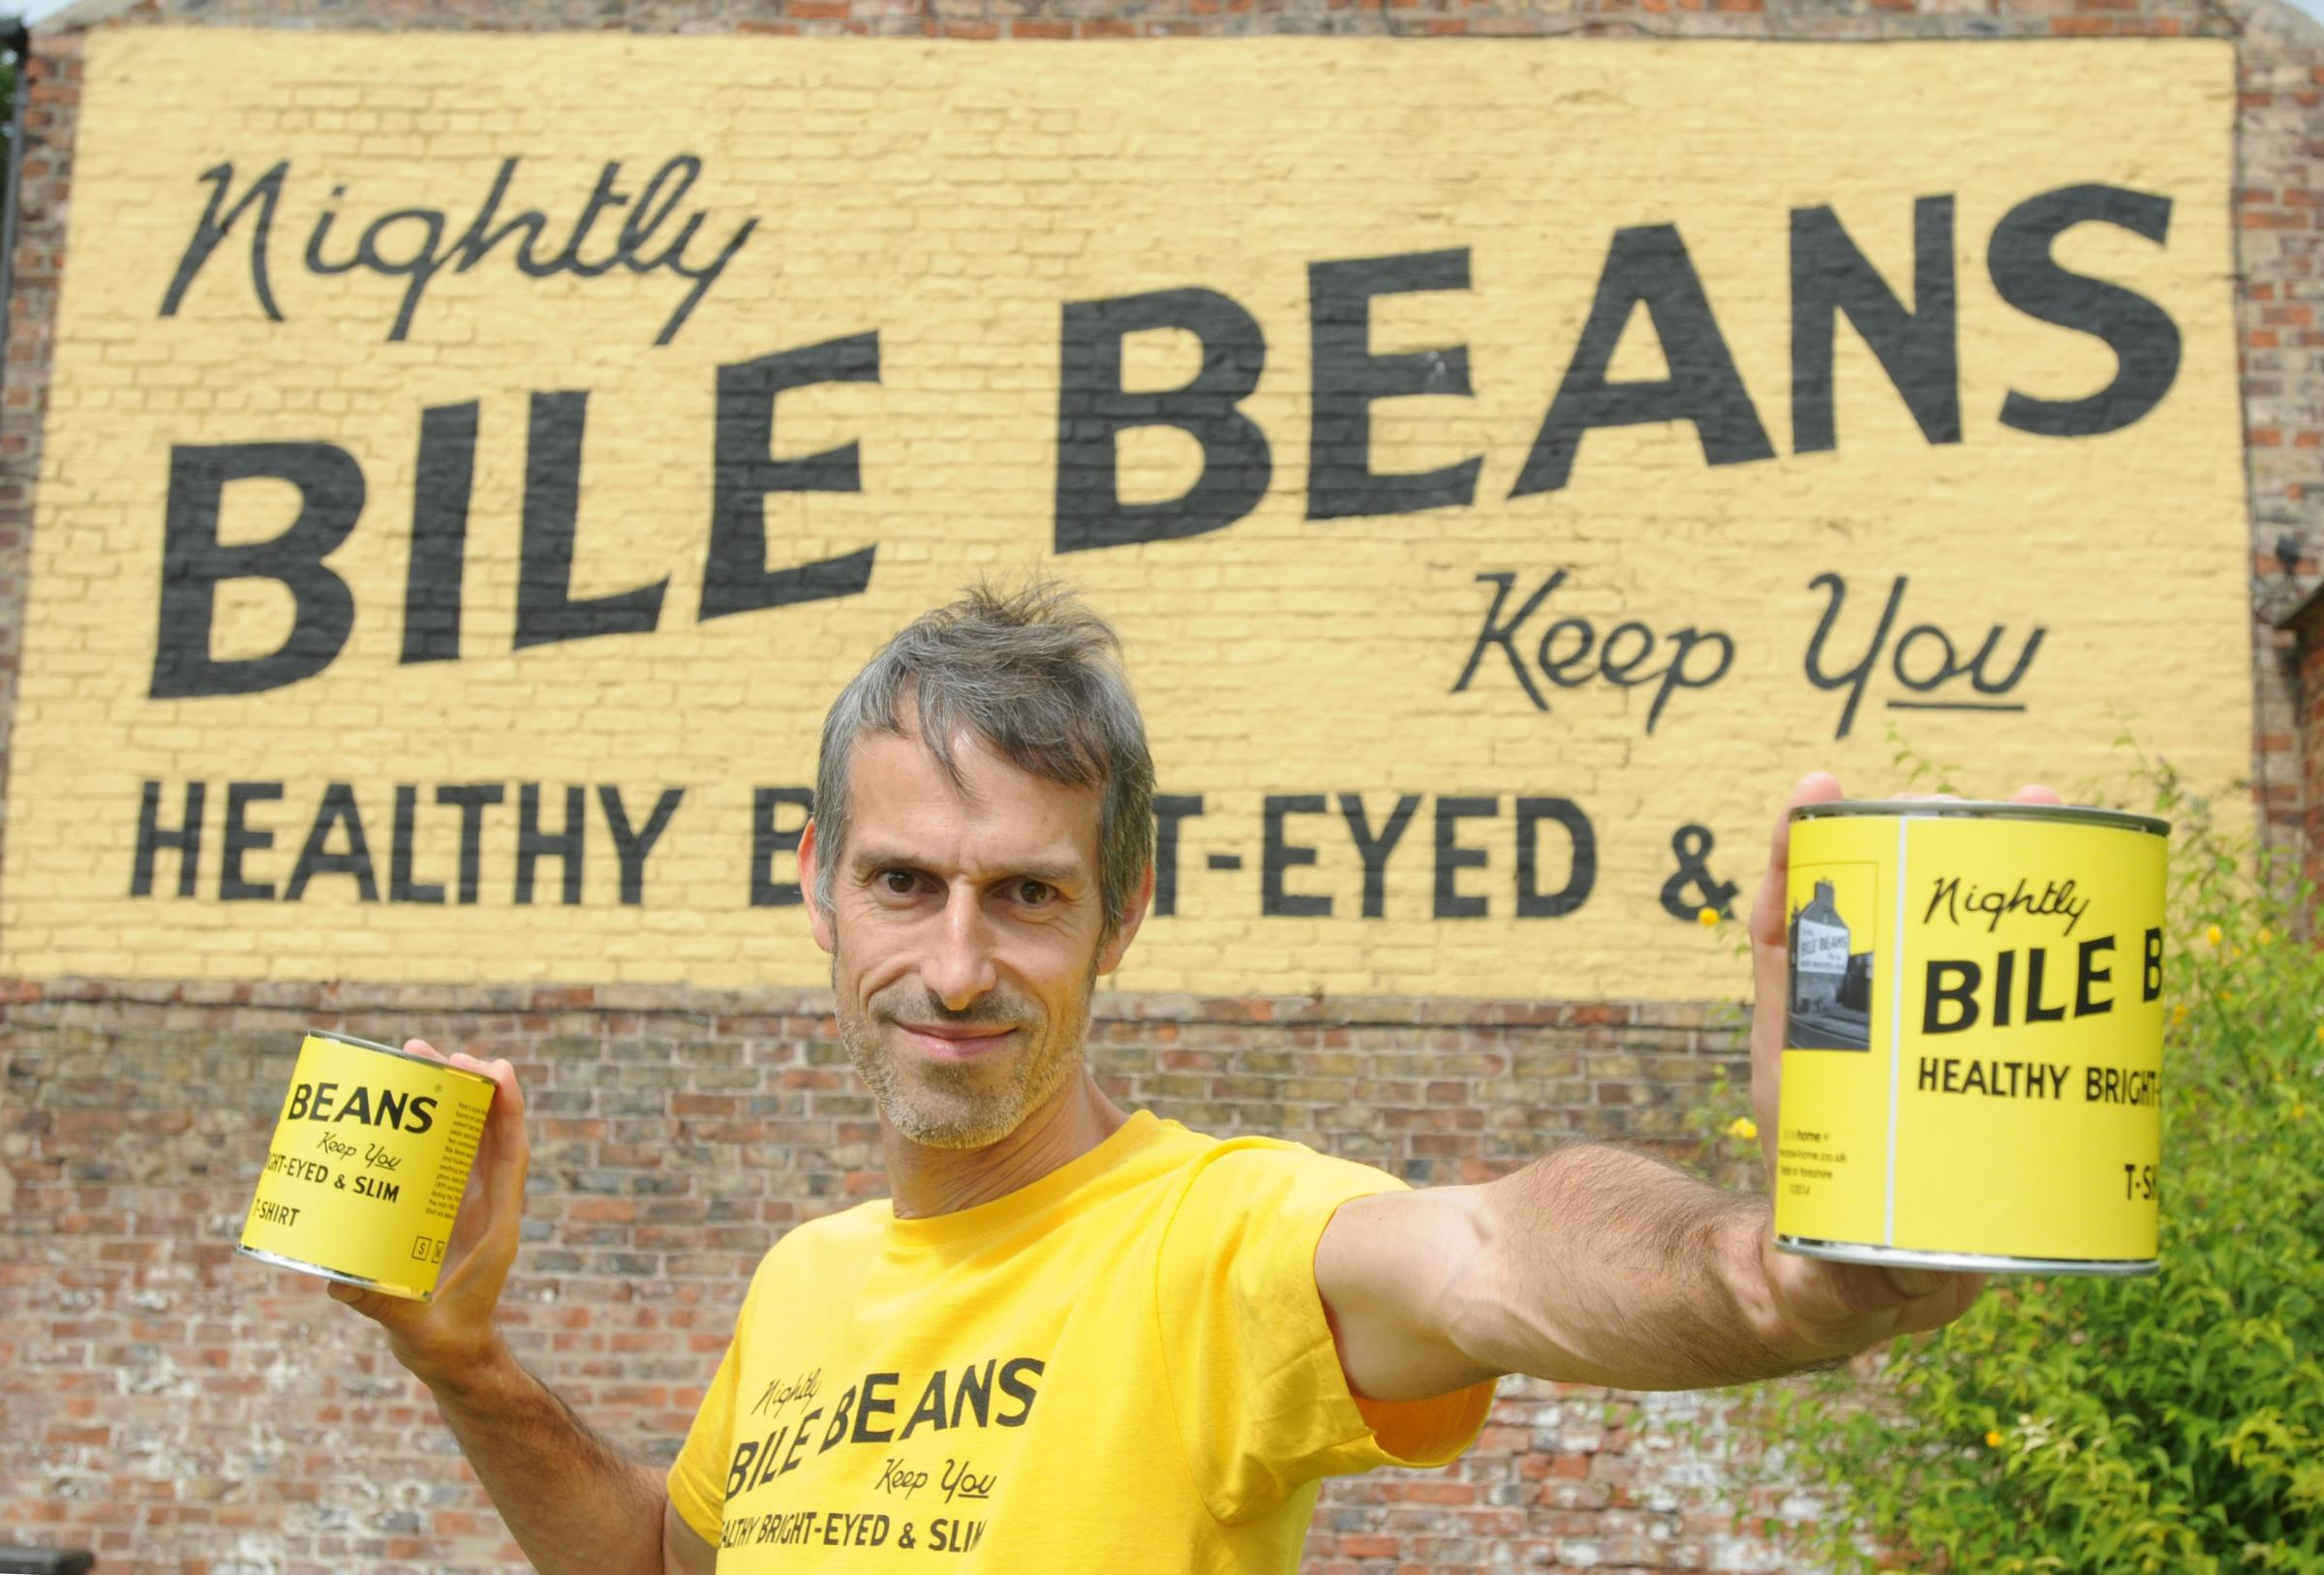 York's iconic Bile Beans advert reproduced on T-shirts